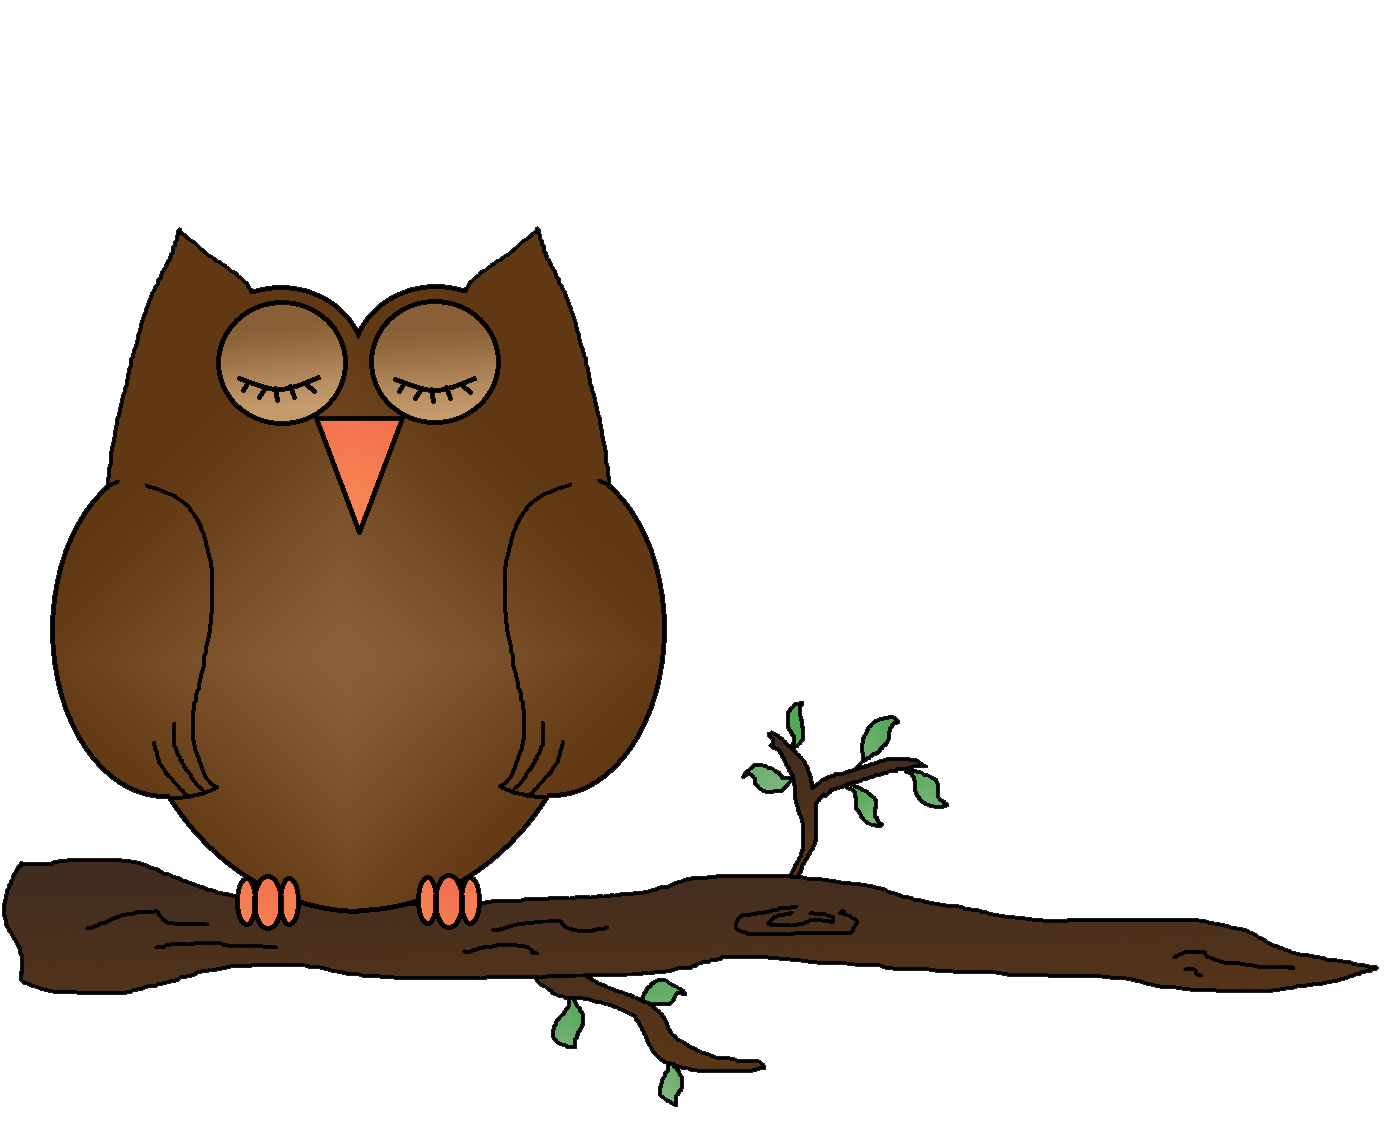 Owl sleeping owl clipart 20 free Cliparts | Download ...